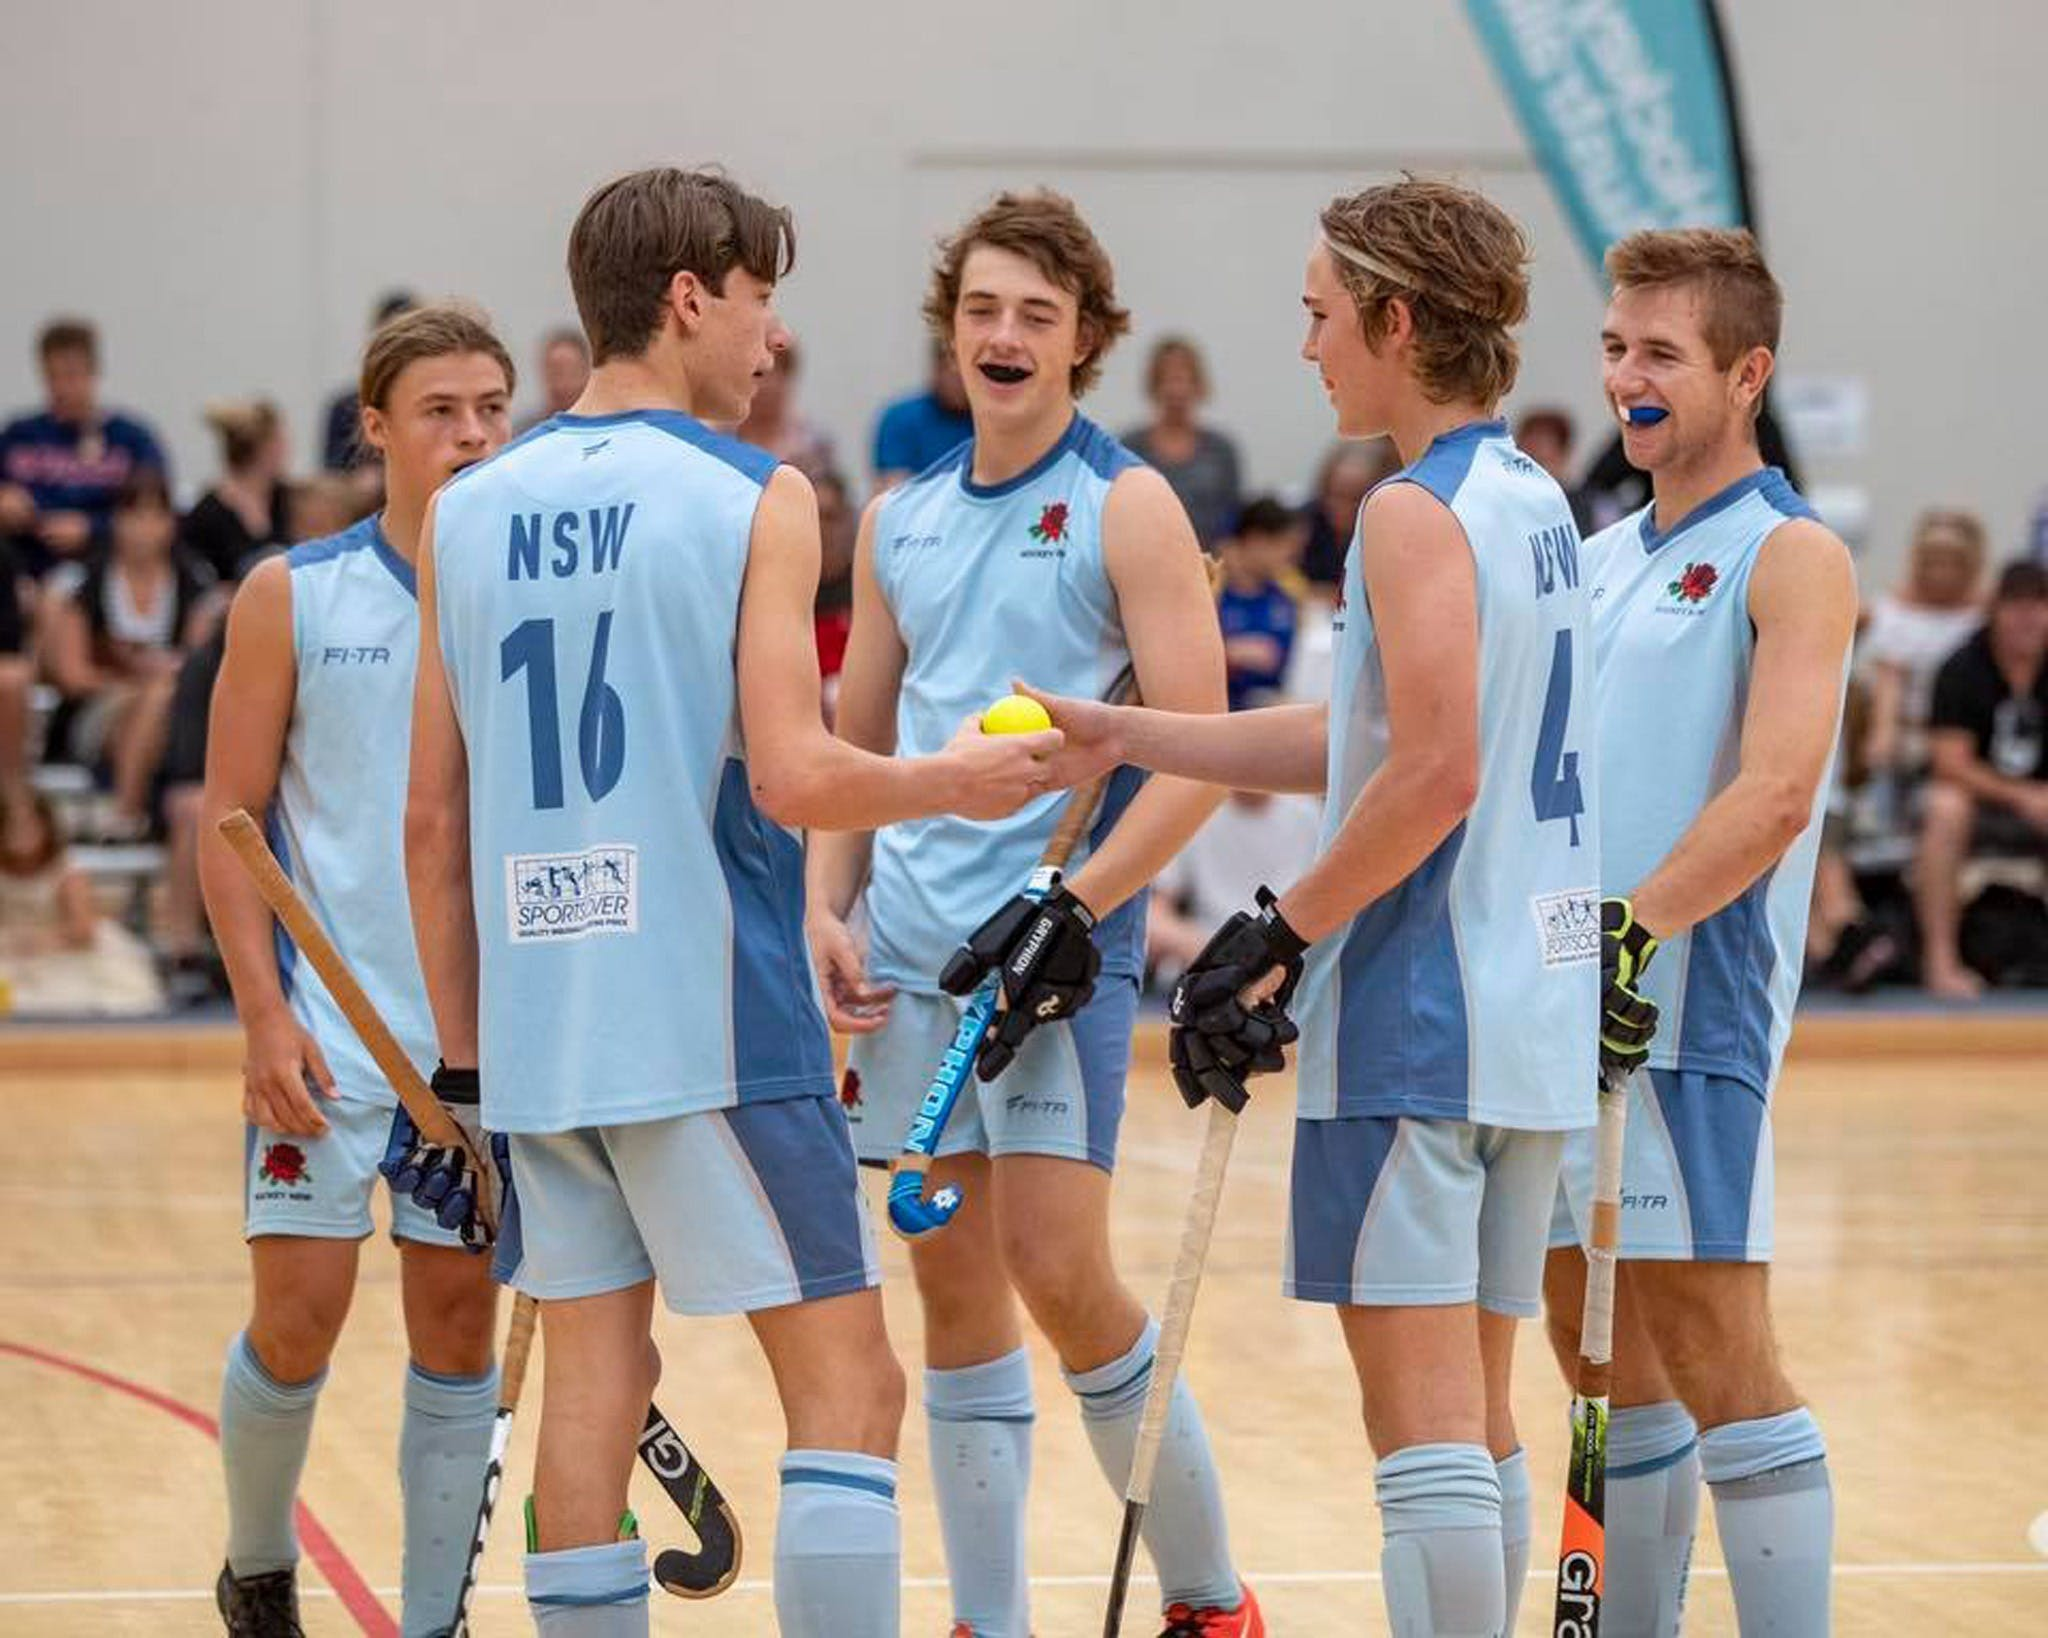 Hockey NSW Indoor State Championship  Open Men - Wagga Wagga Accommodation